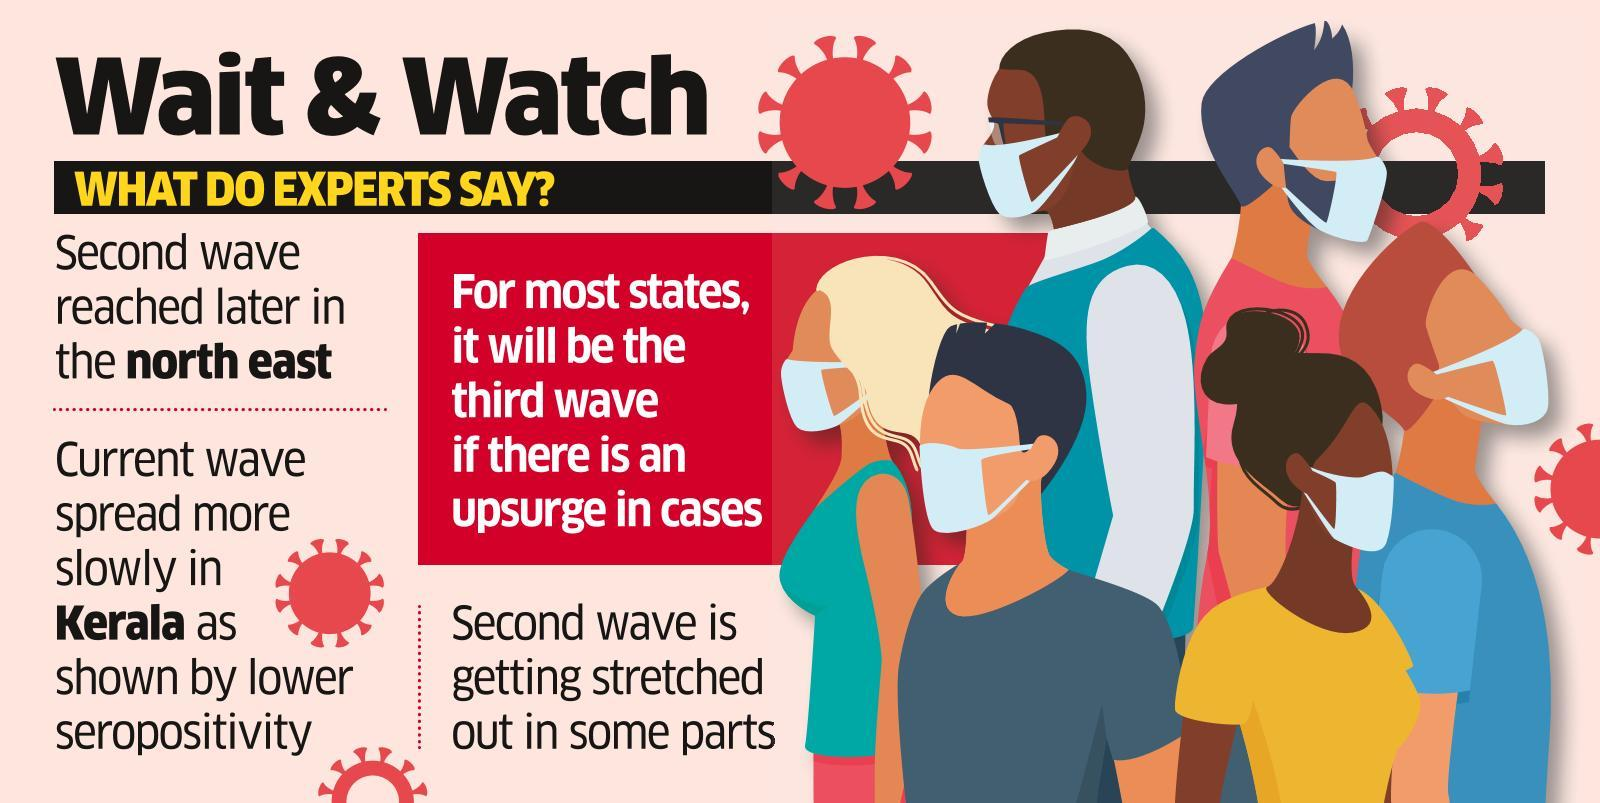 covid third wave: no third wave yet, surge in cases continuation of the  second one, say experts - the economic times